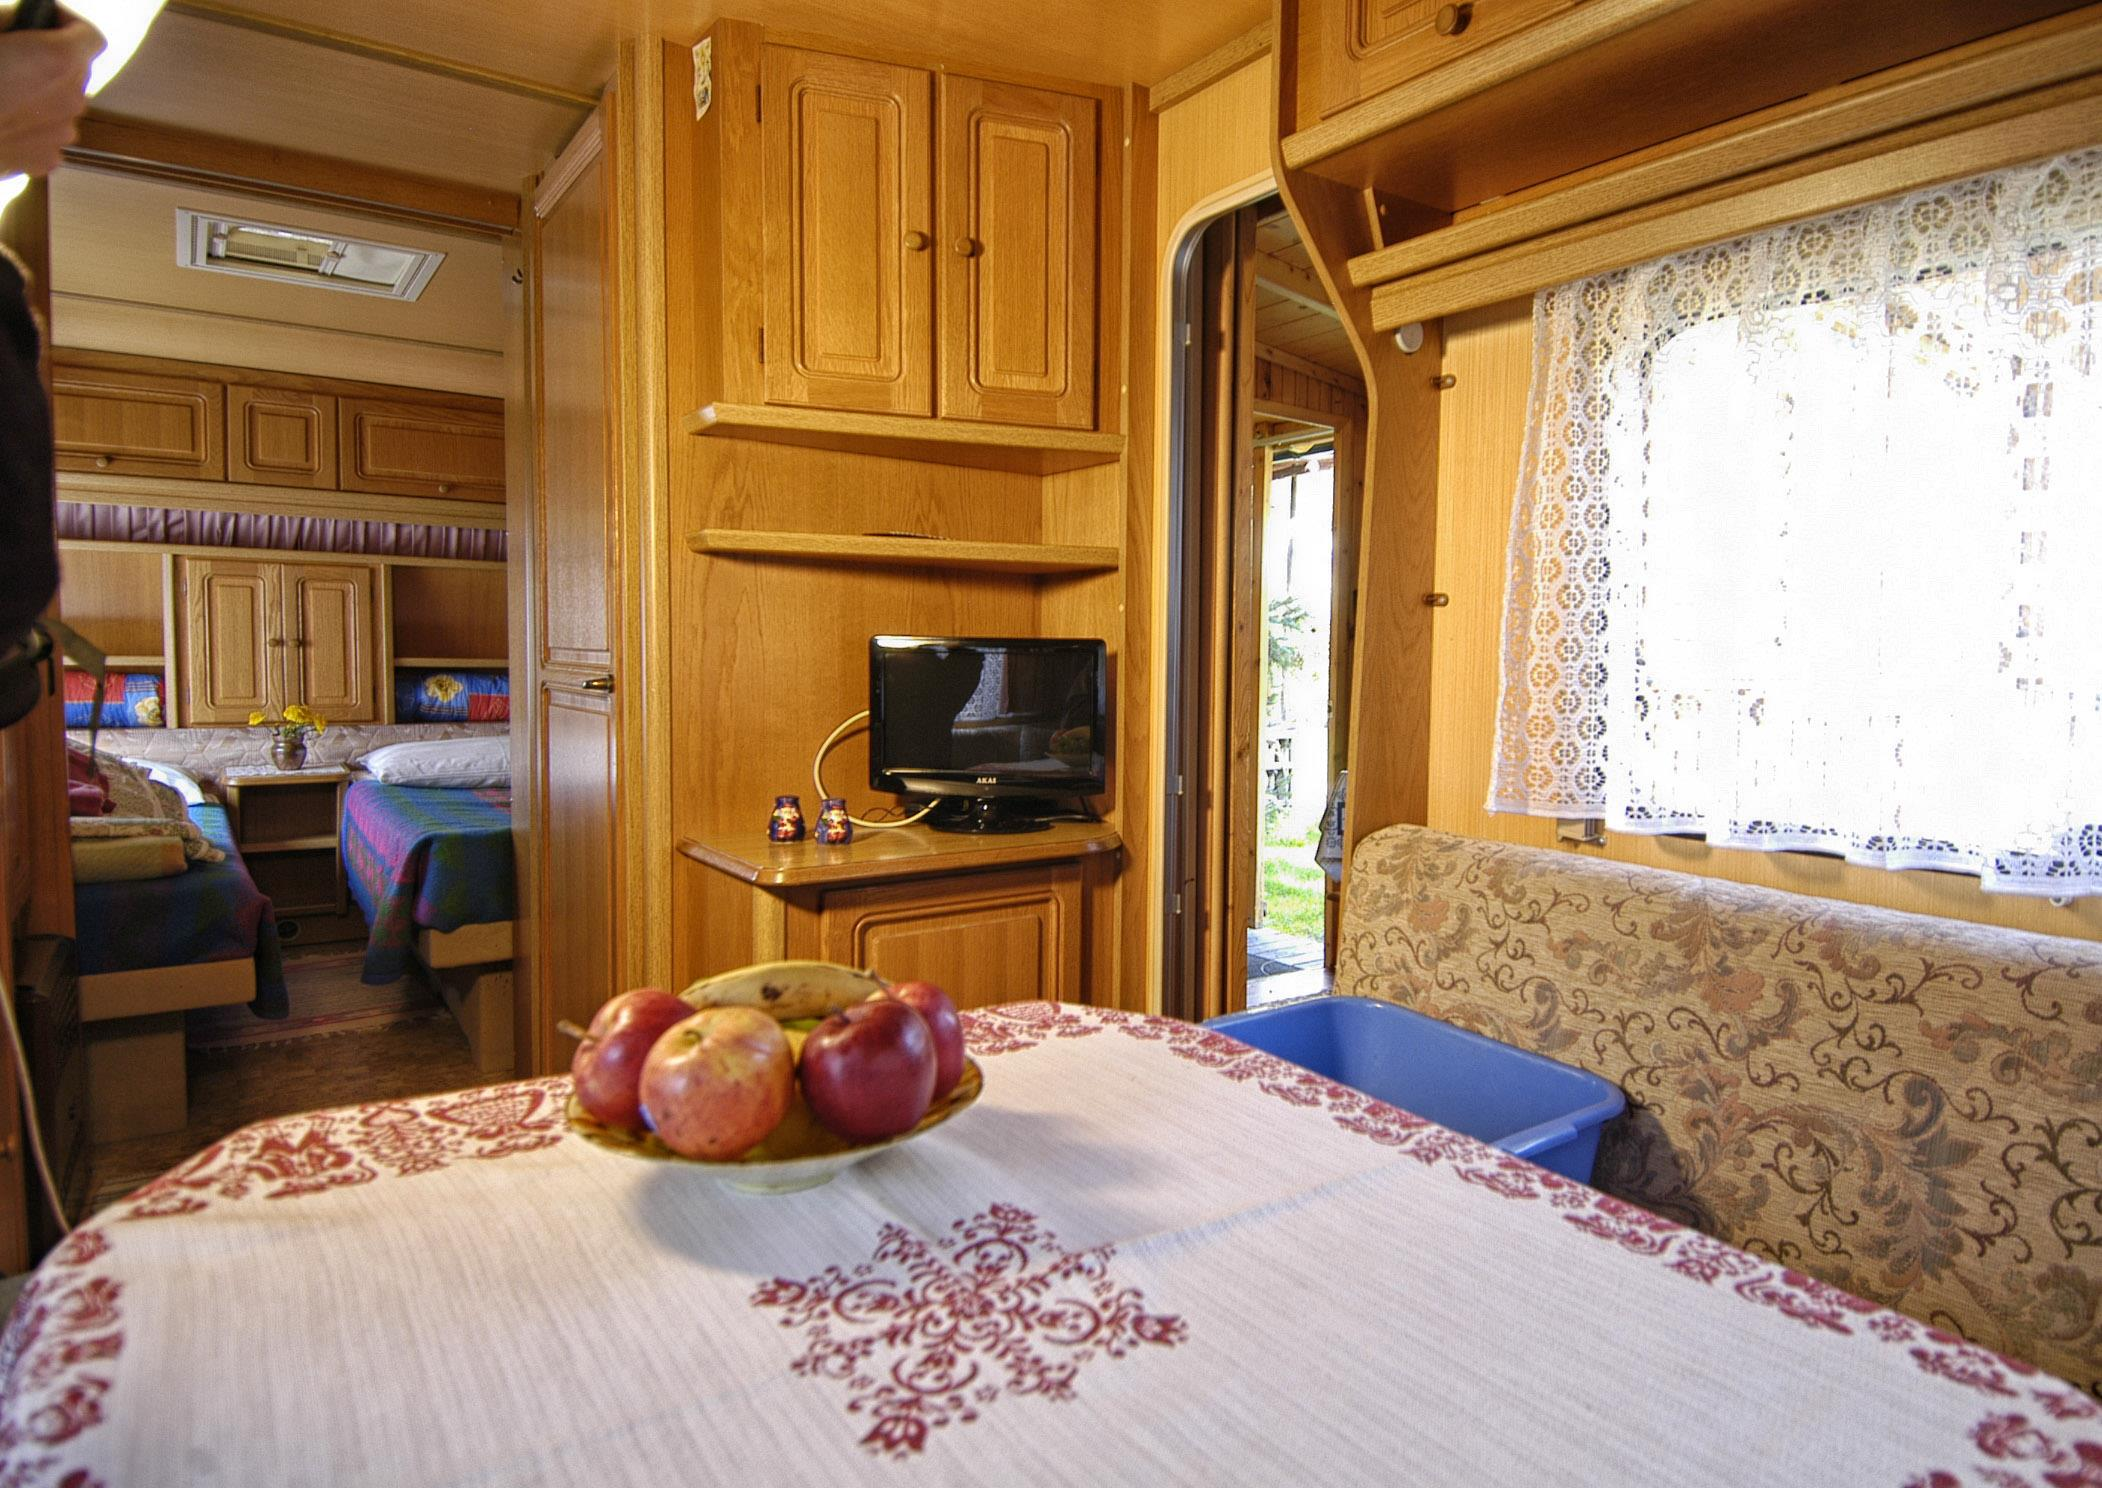 Rental - Caravan - Heating (Extra Fees In Winter) - Camping Catinaccio Rosengarten